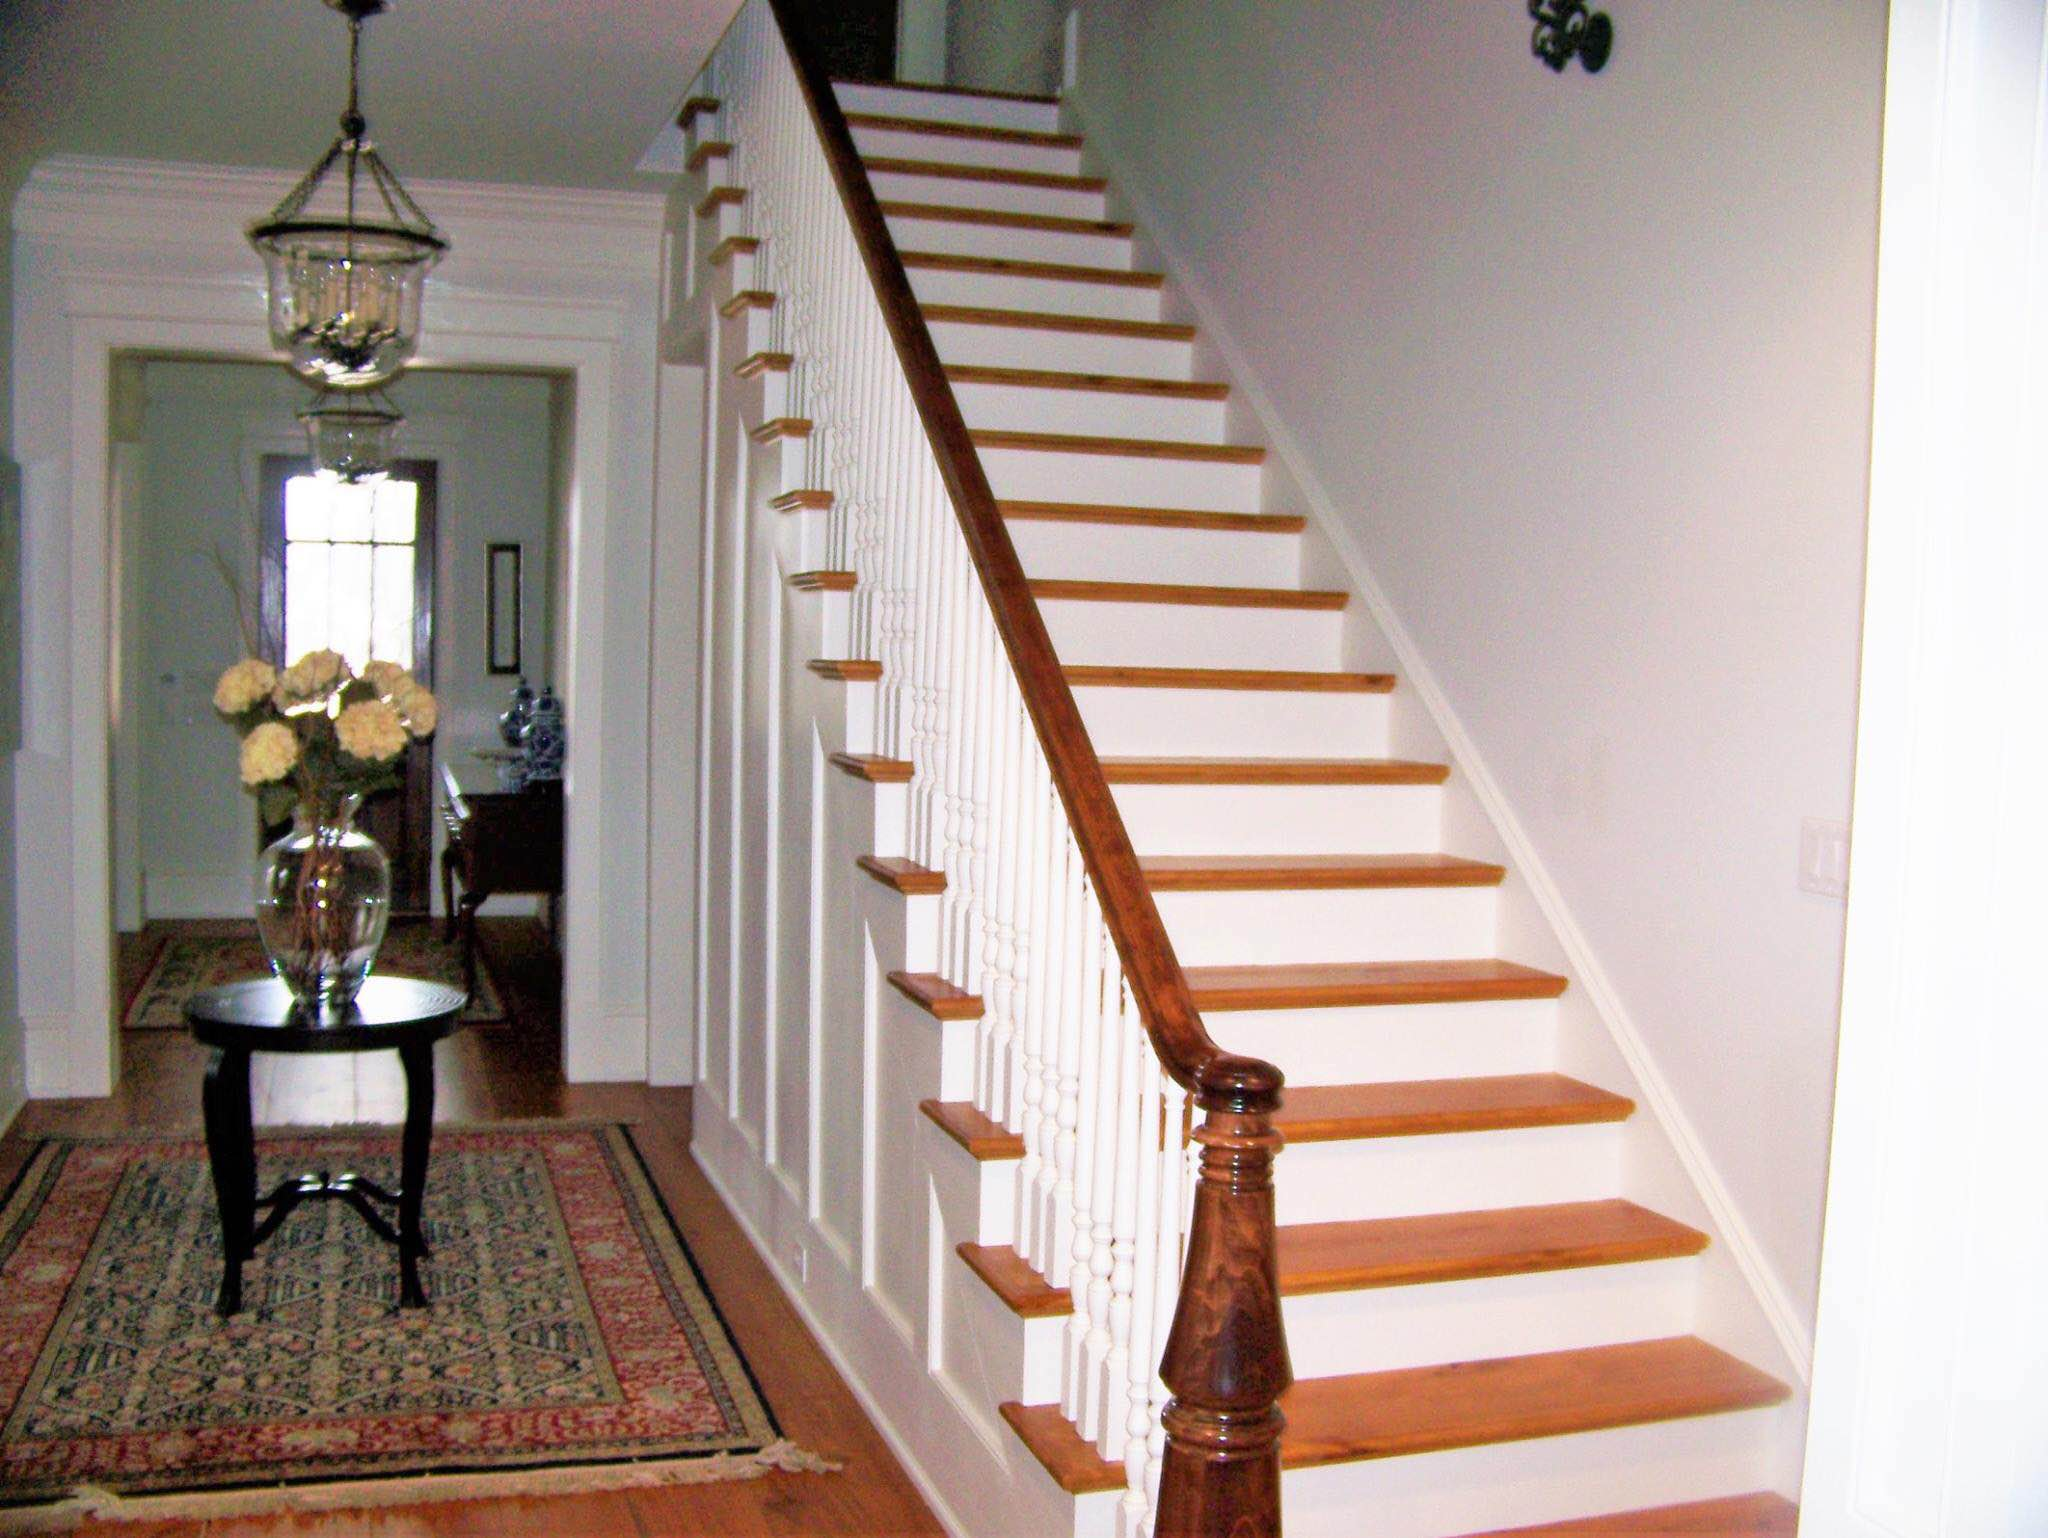 Custom turned newel post and custom handrail - Augusta, GA